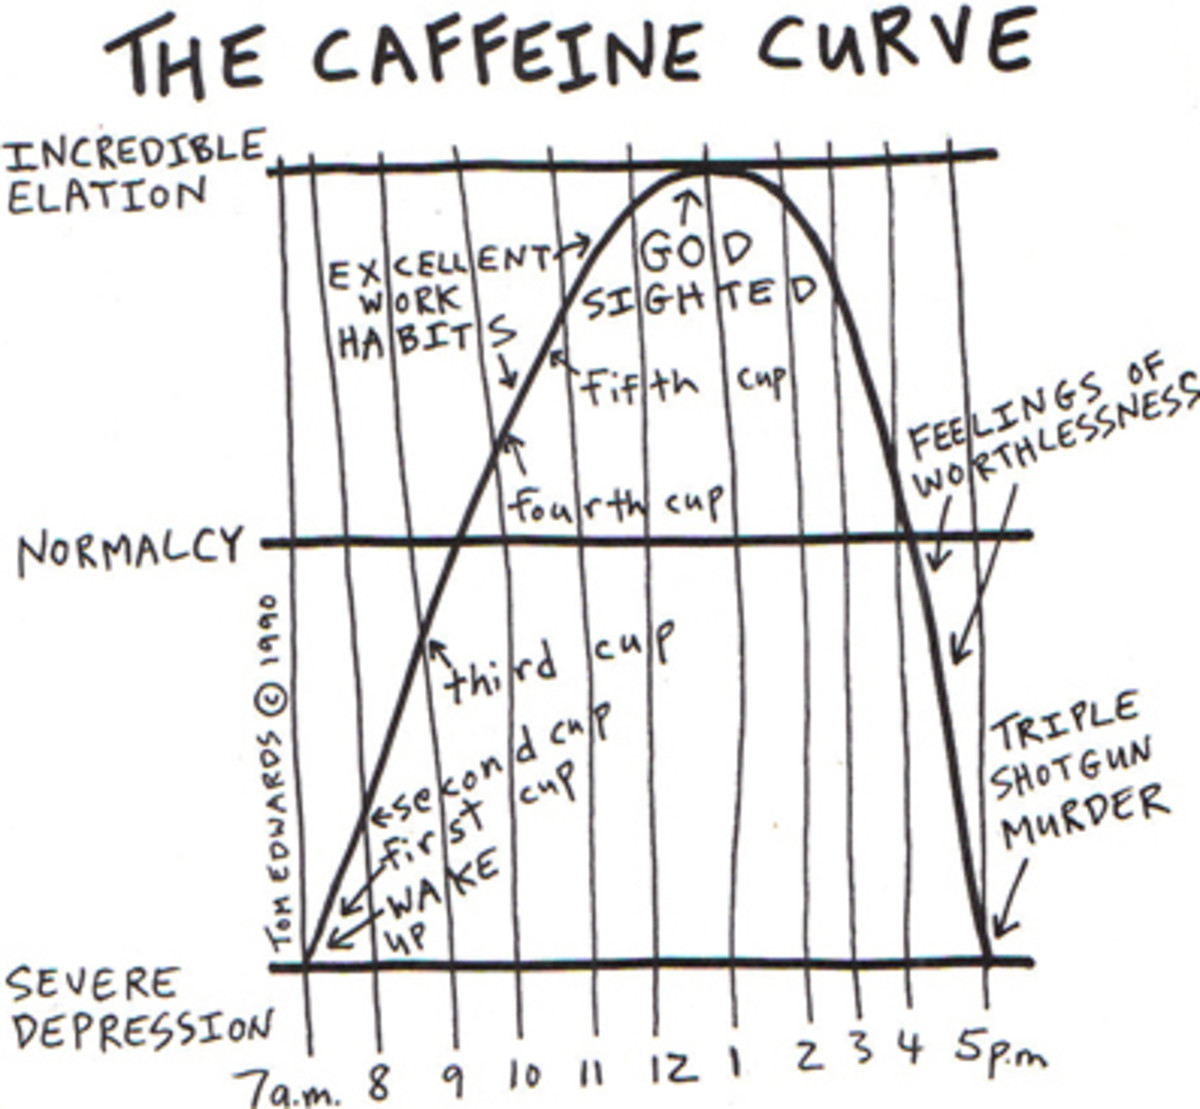 One person's interpretation of the wonderful high and brutal crash delivered by caffeine